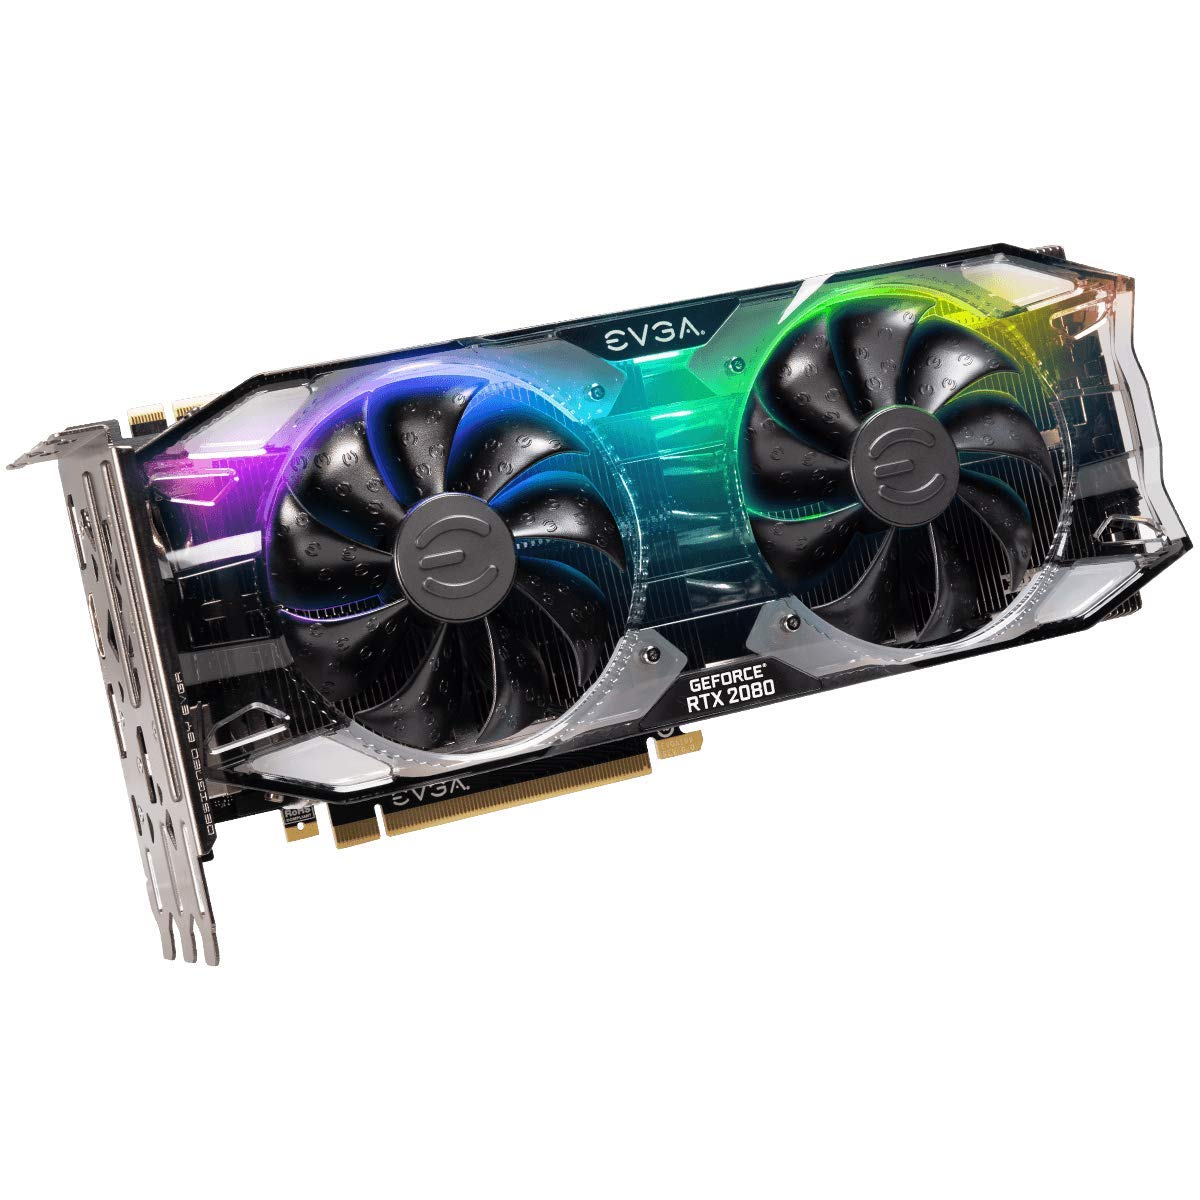 EVGA GeForce RTX 2080 XC ULTRA GAMING, 8GB GDDR6, Dual HDB Fans & RGB LED Graphics Card 08G-P4-2183-KR by EVGA (Image #2)